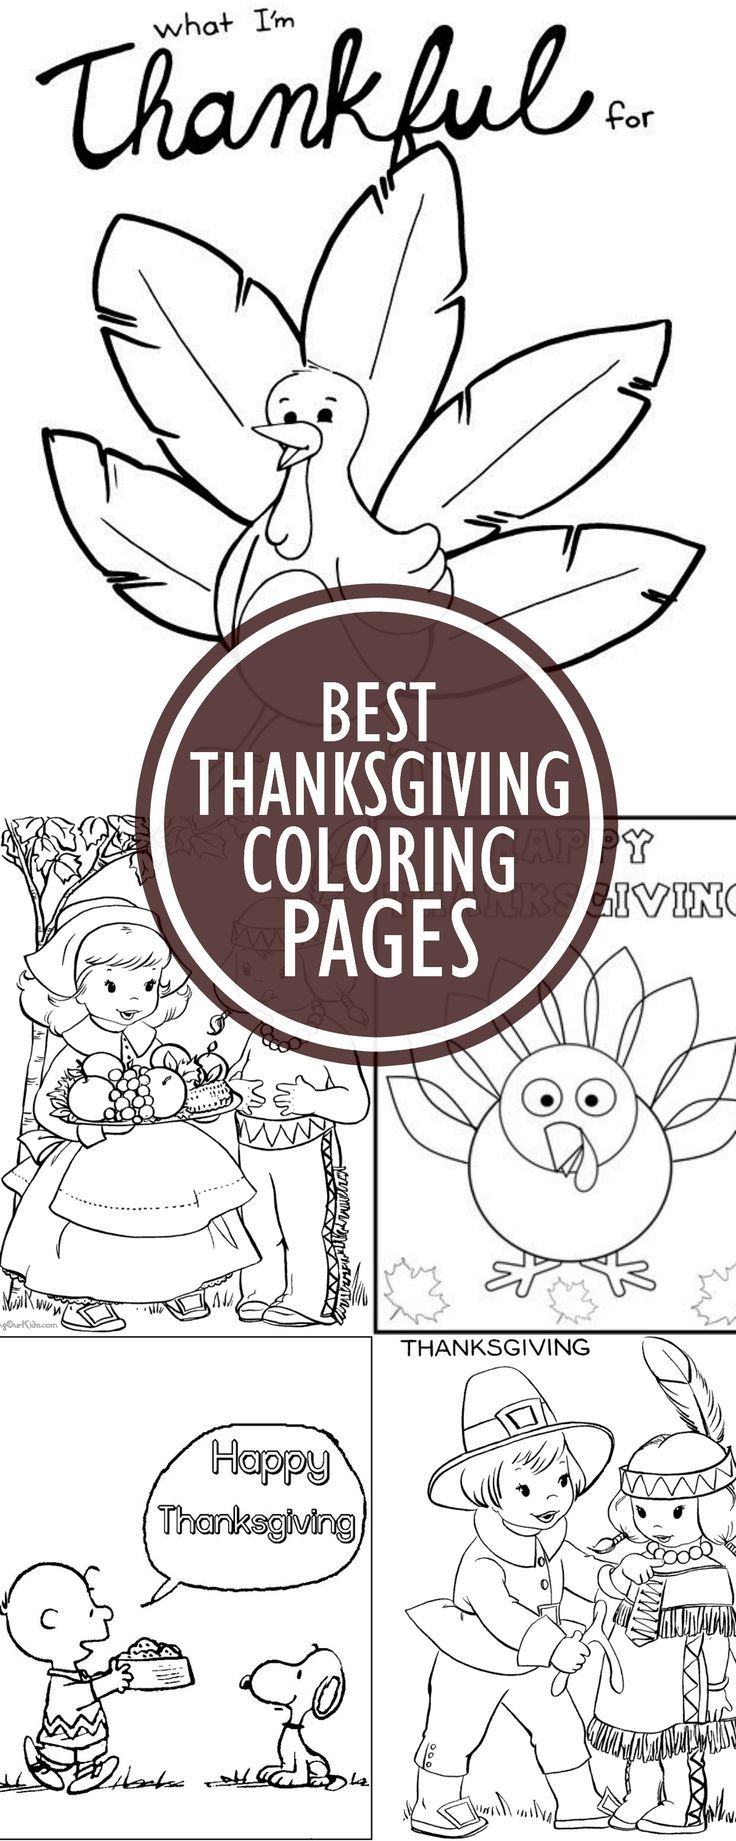 19 best images about *kid friendly  thanksgiving ideas